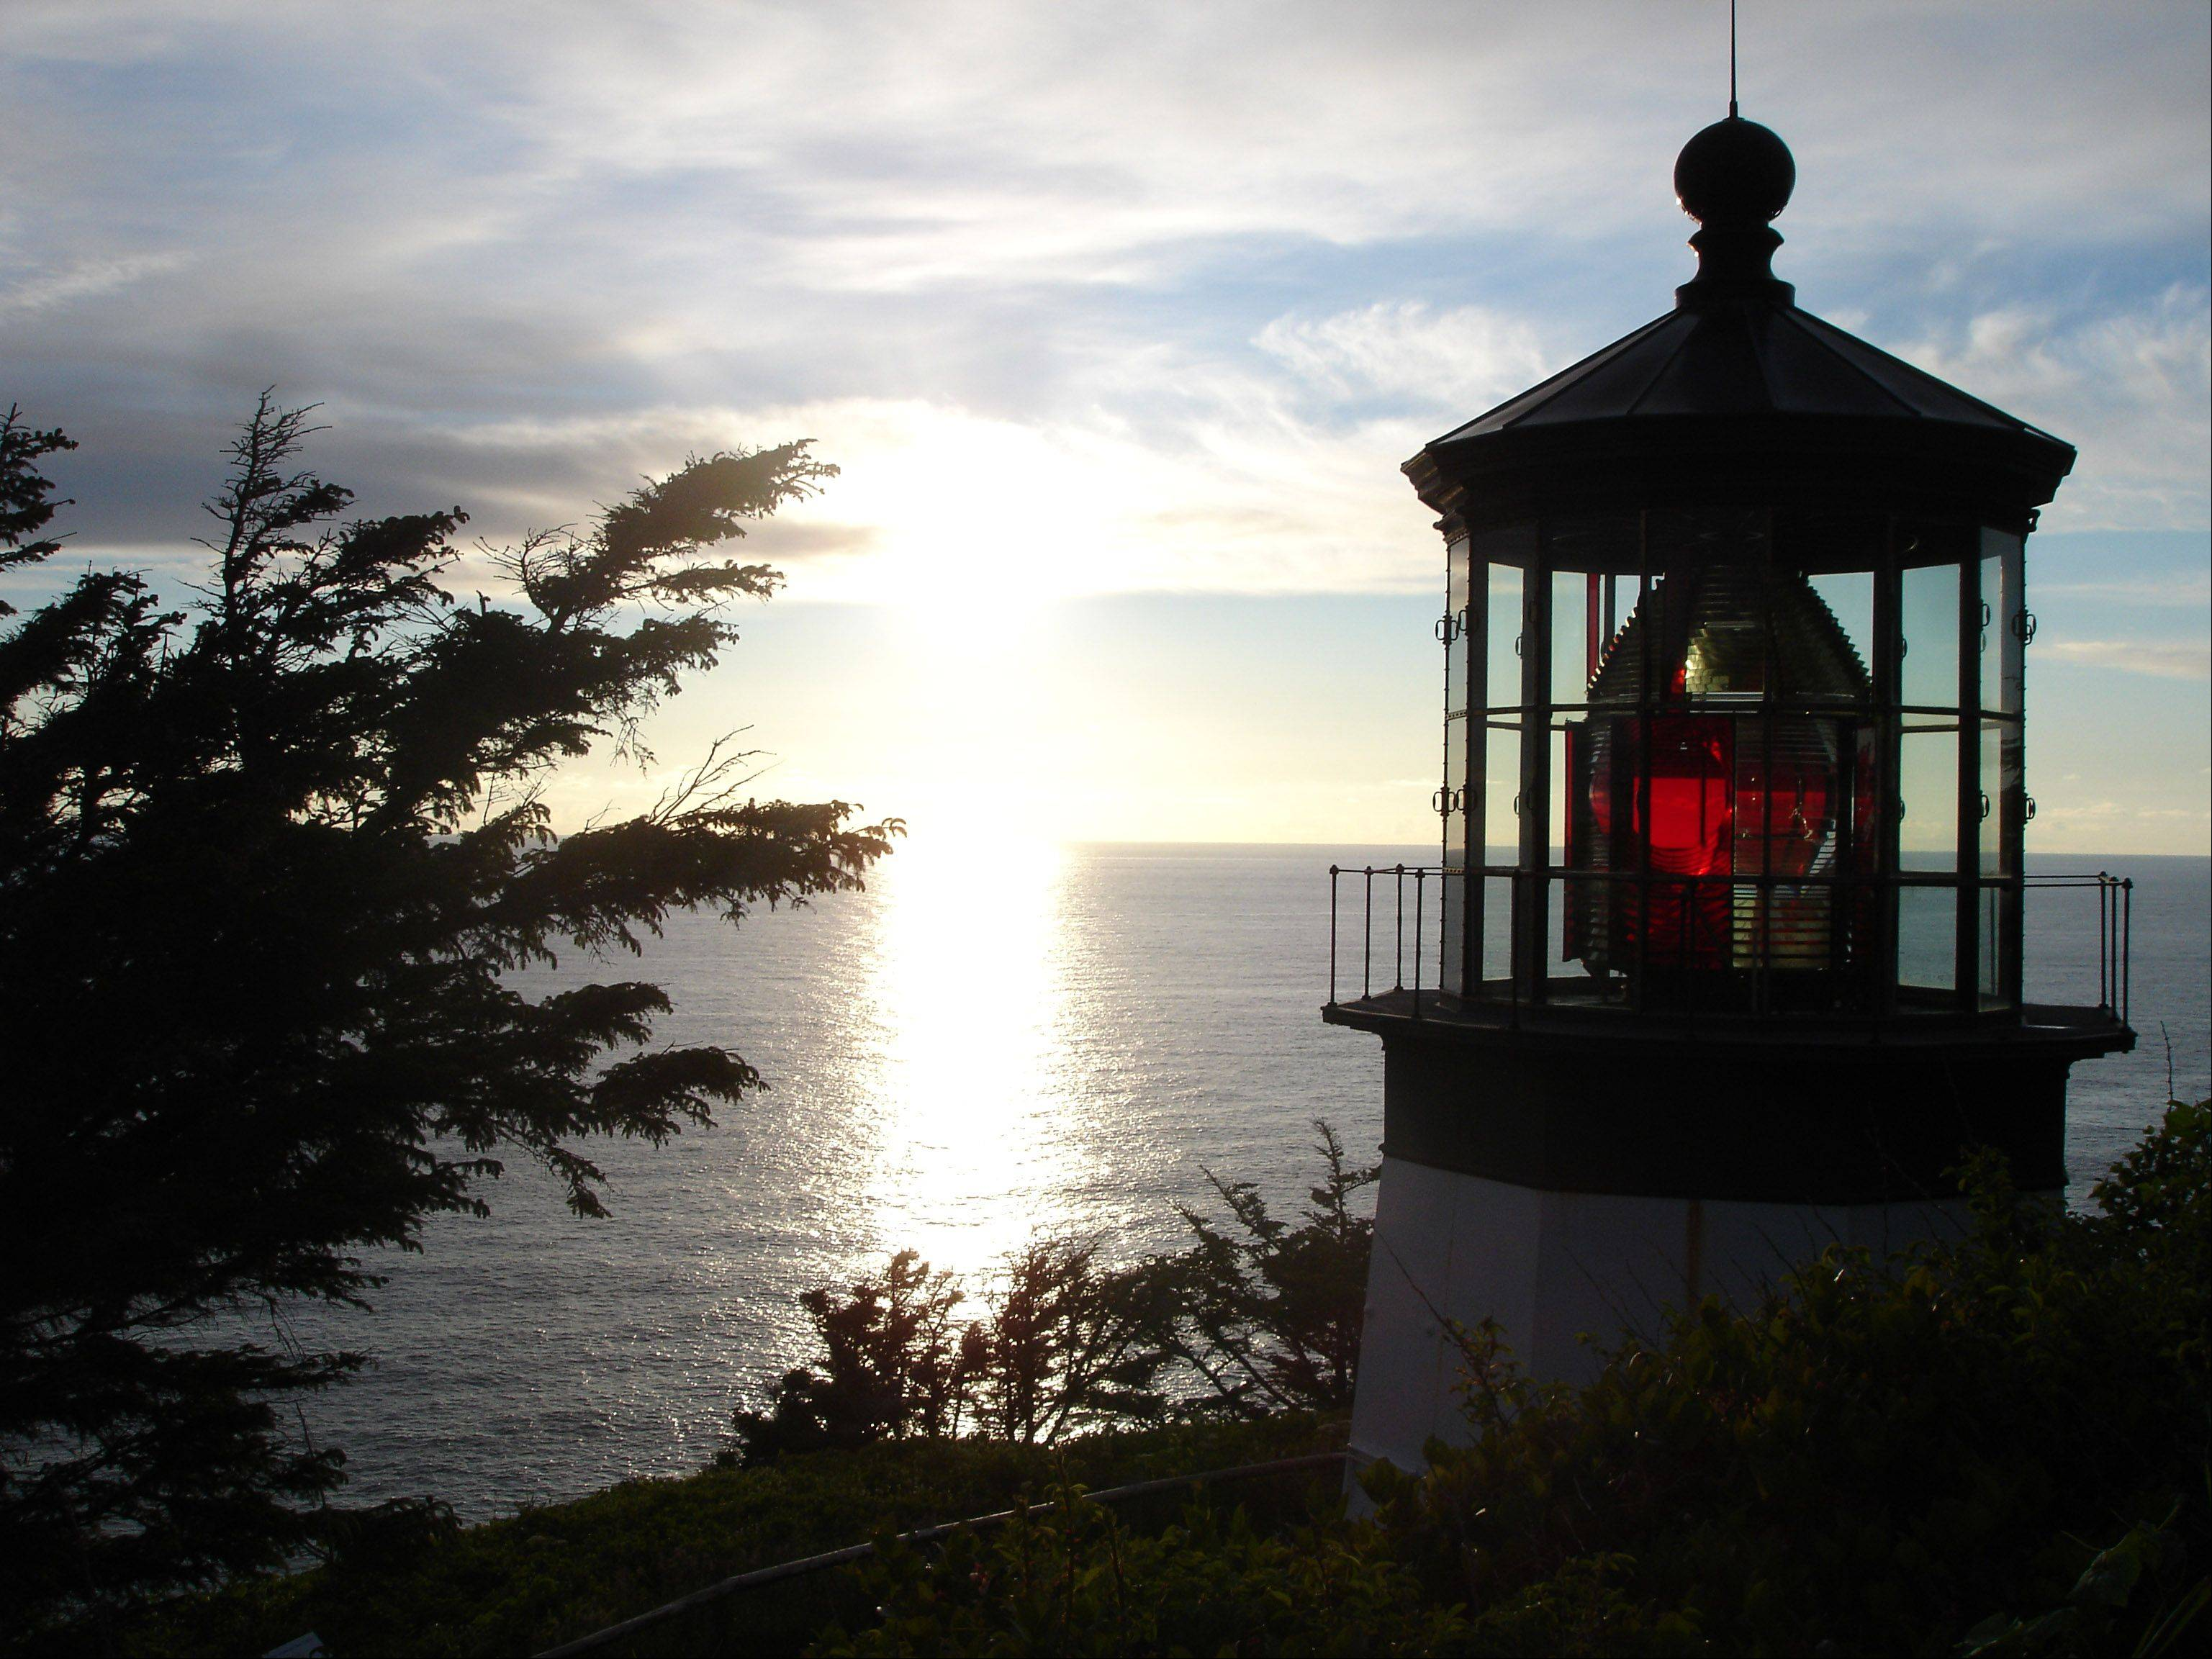 Taken at Cape Meares Lighthouse in Tillamook, Oregon during a family vacation in June, 2012.